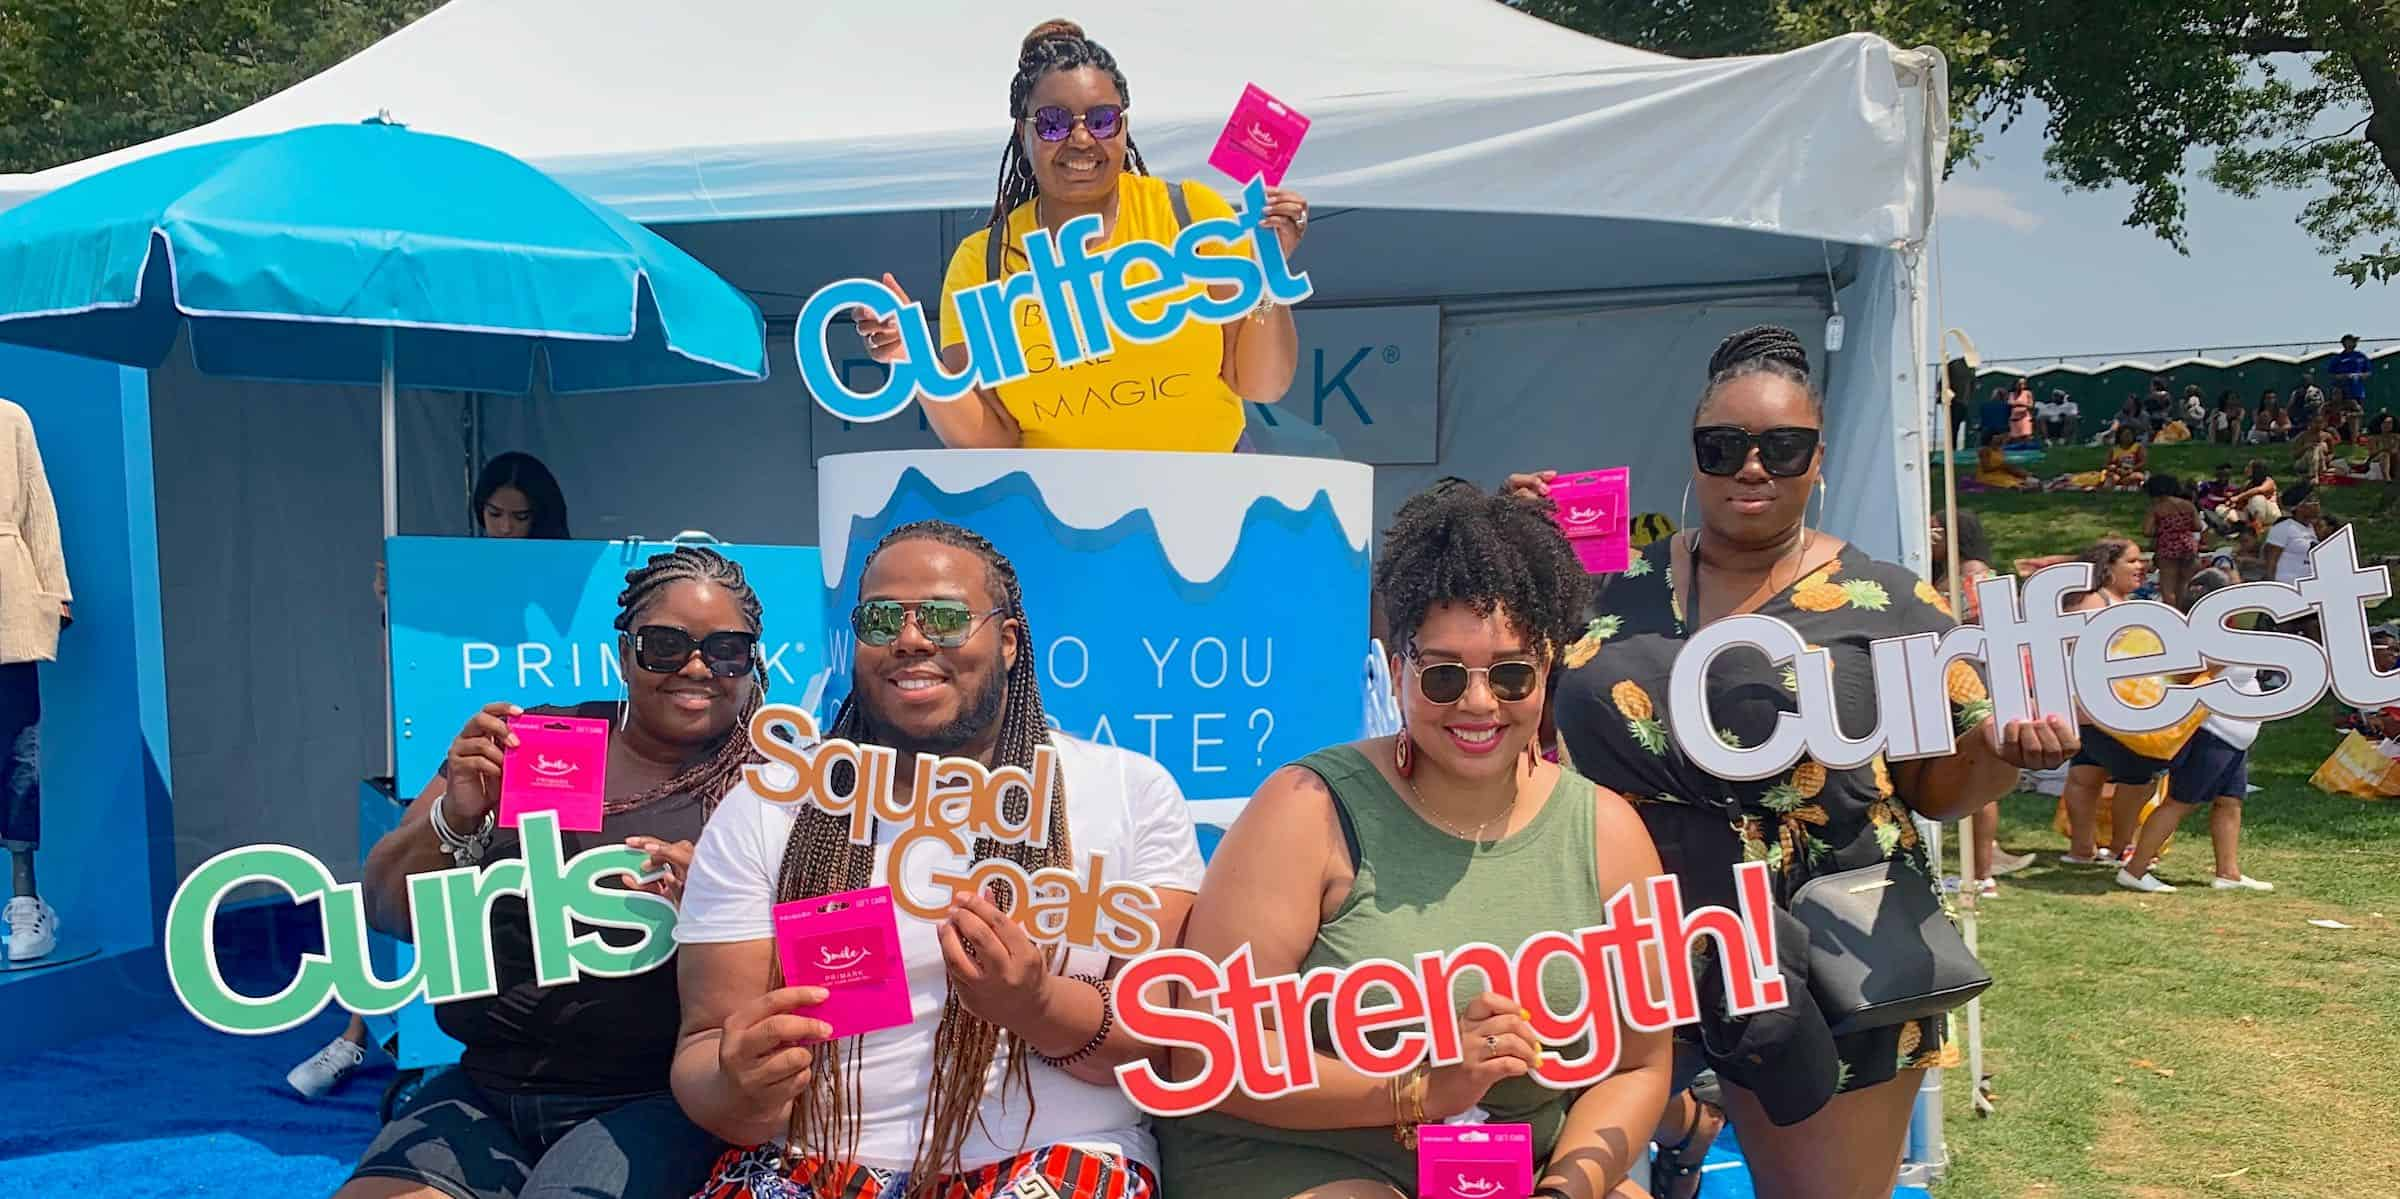 Curlfest Brand Experiential Marketing Creative Examples - NYC